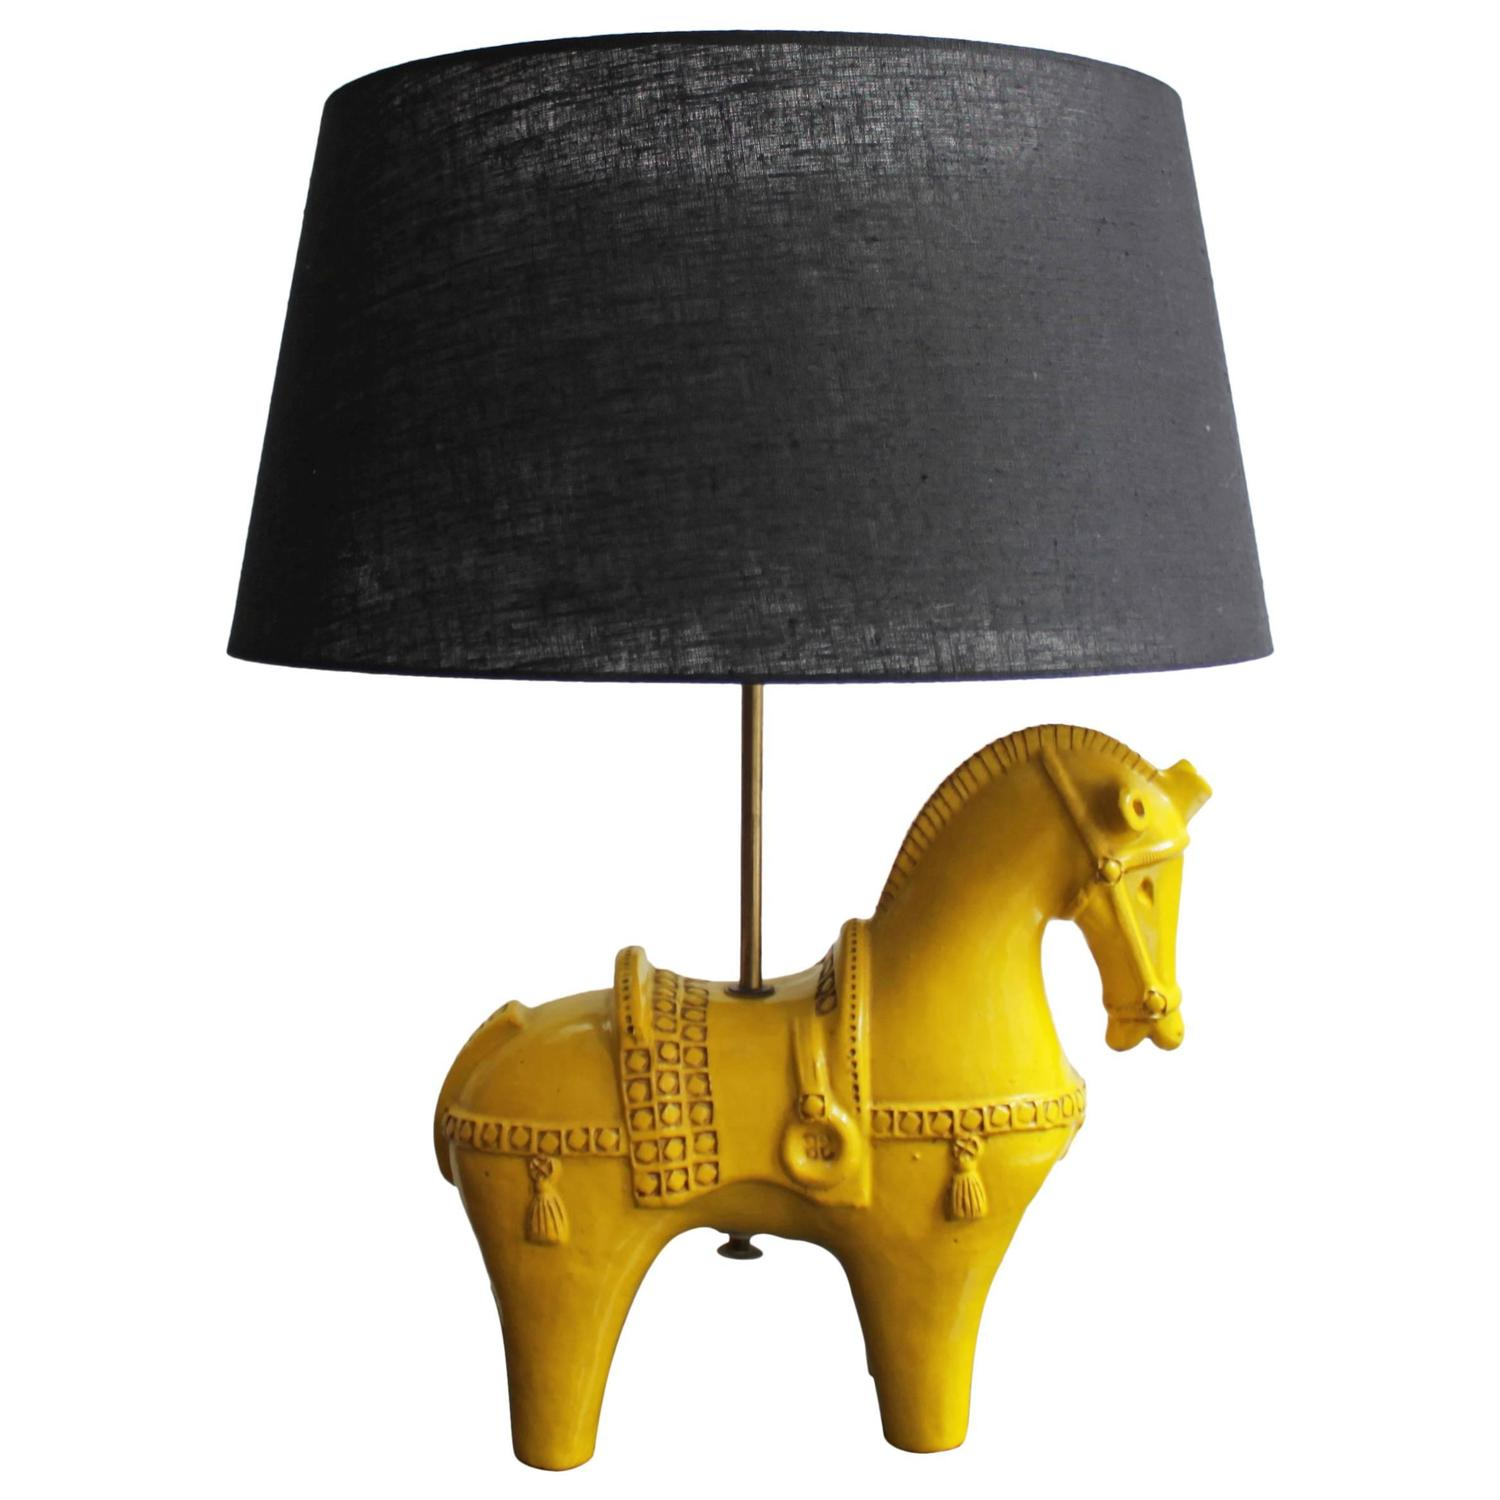 Finest Horse Lamp by Aldo Londi for Bitossi, Italy at 1stdibs ZJ23